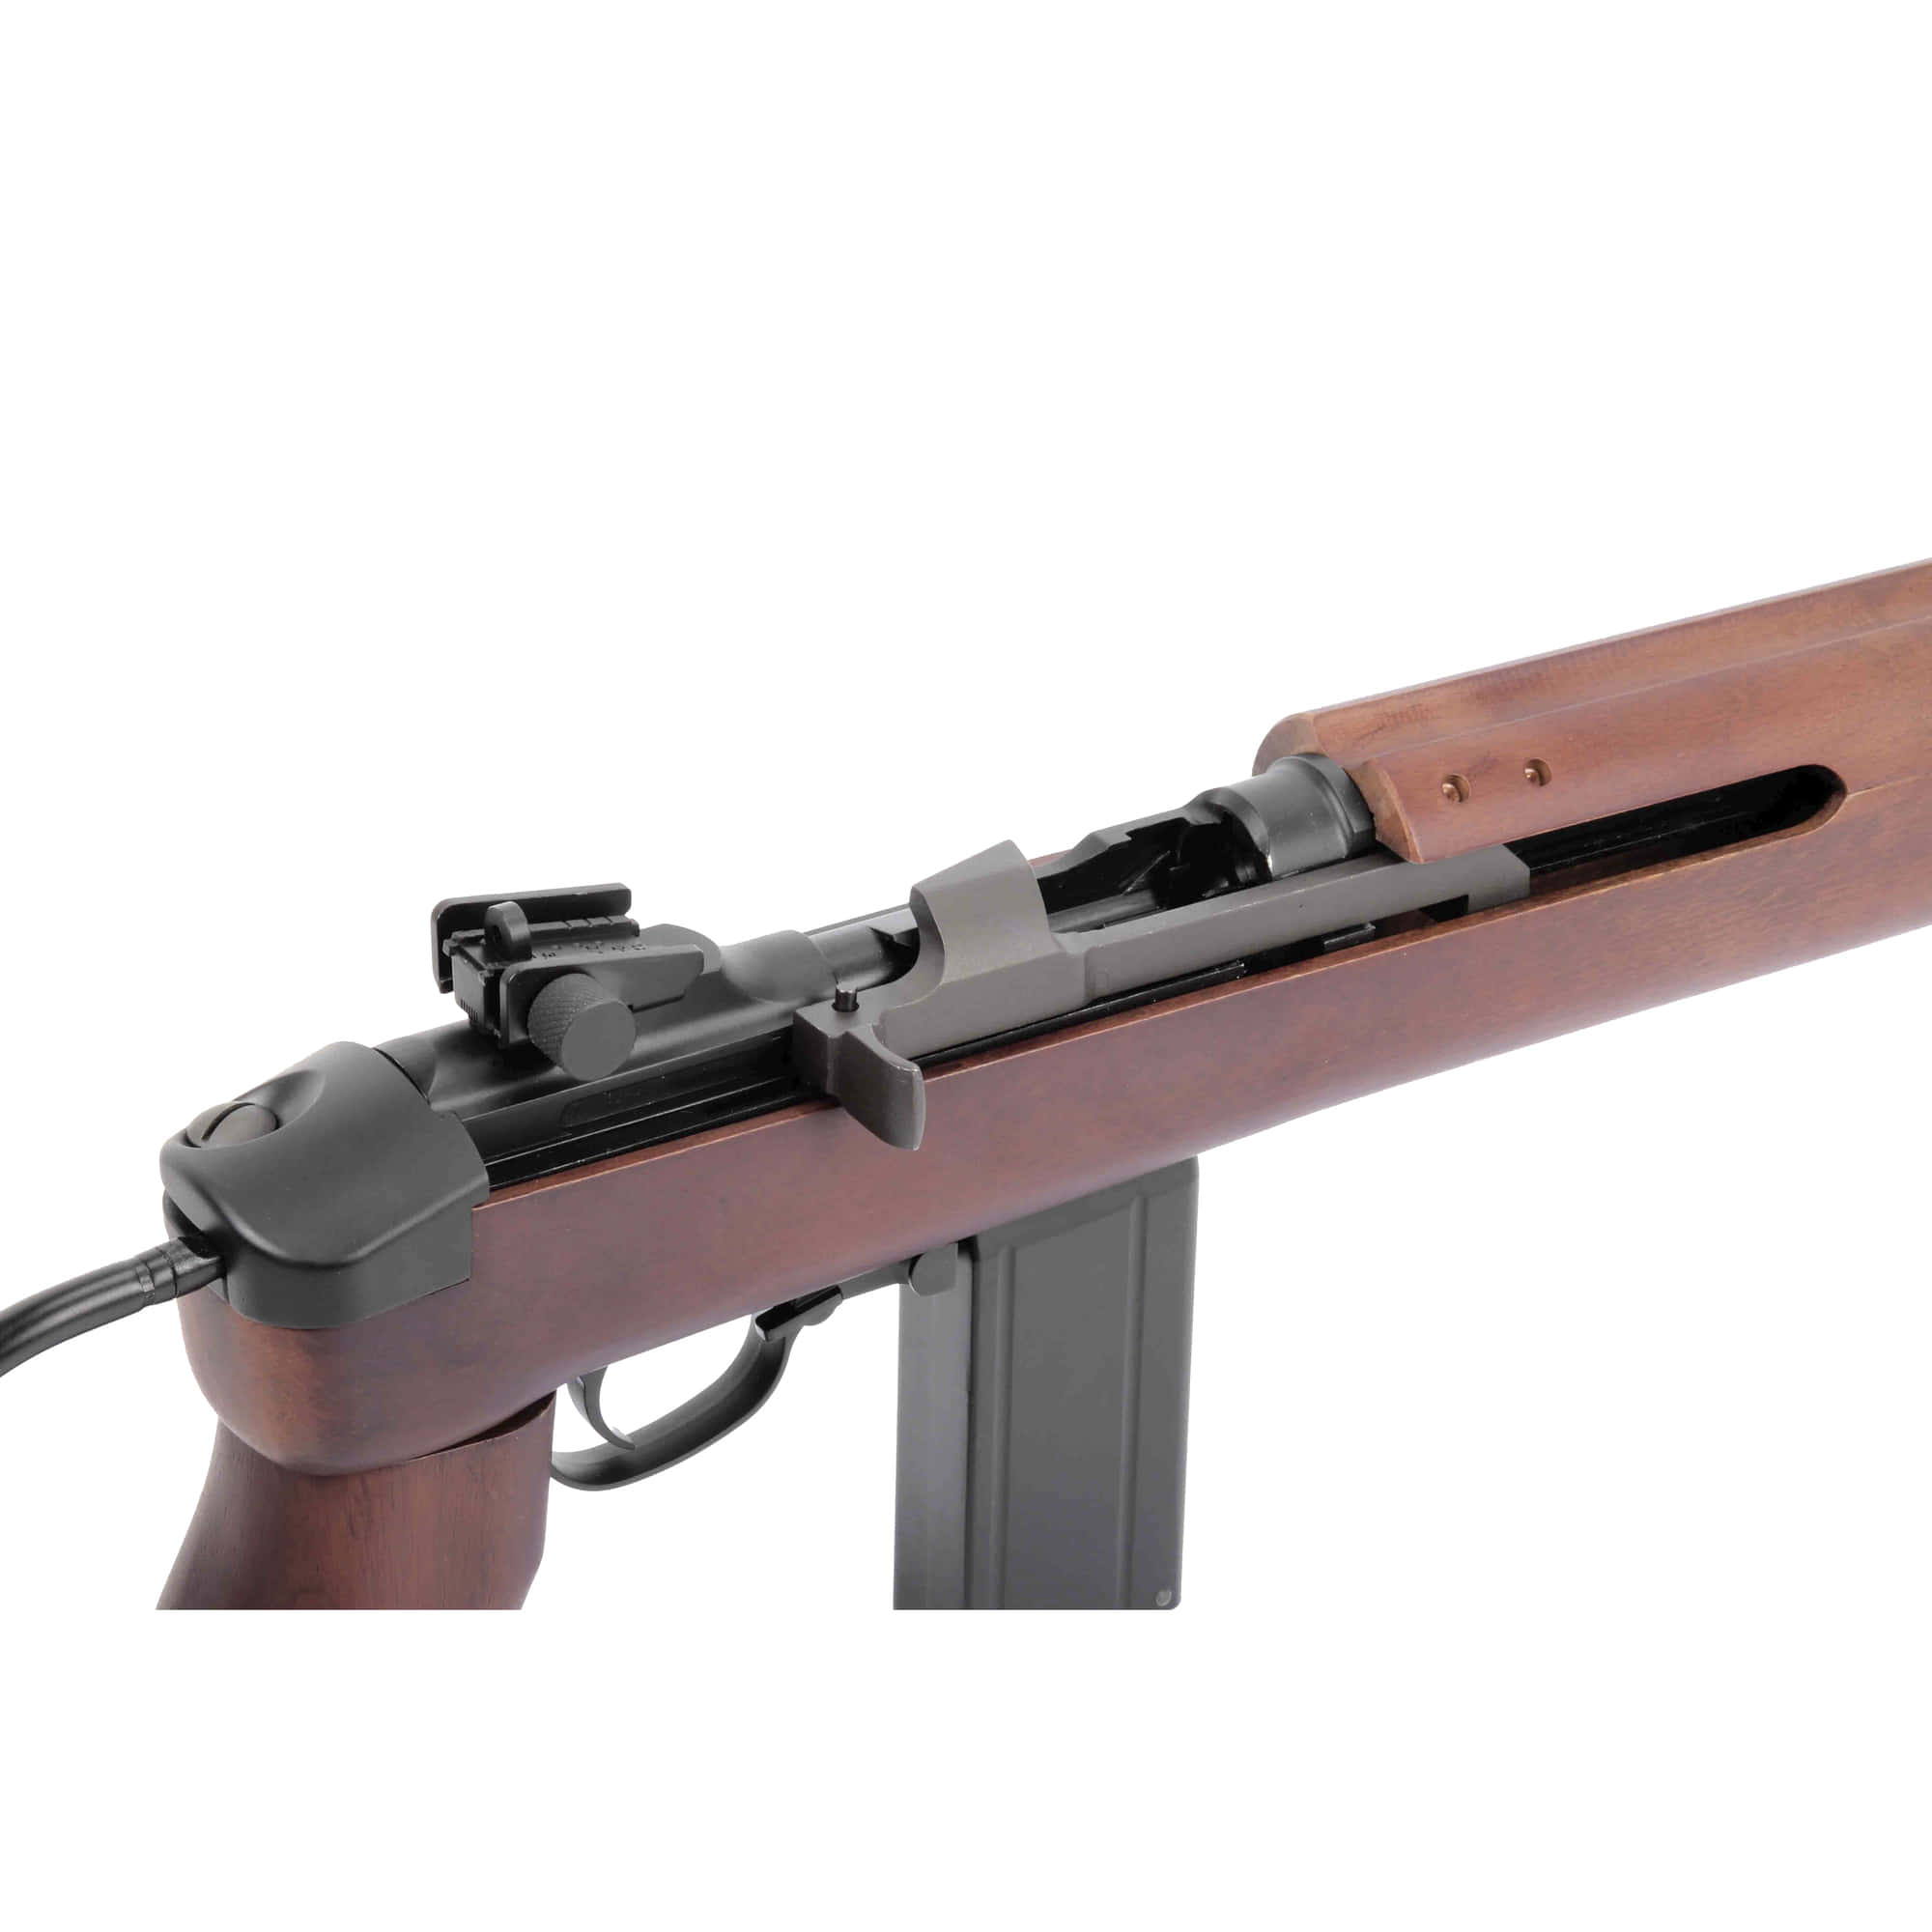 LE6030-7-Réplique M1A1 Paratrooper Co2 - KING ARMS - LE6030C